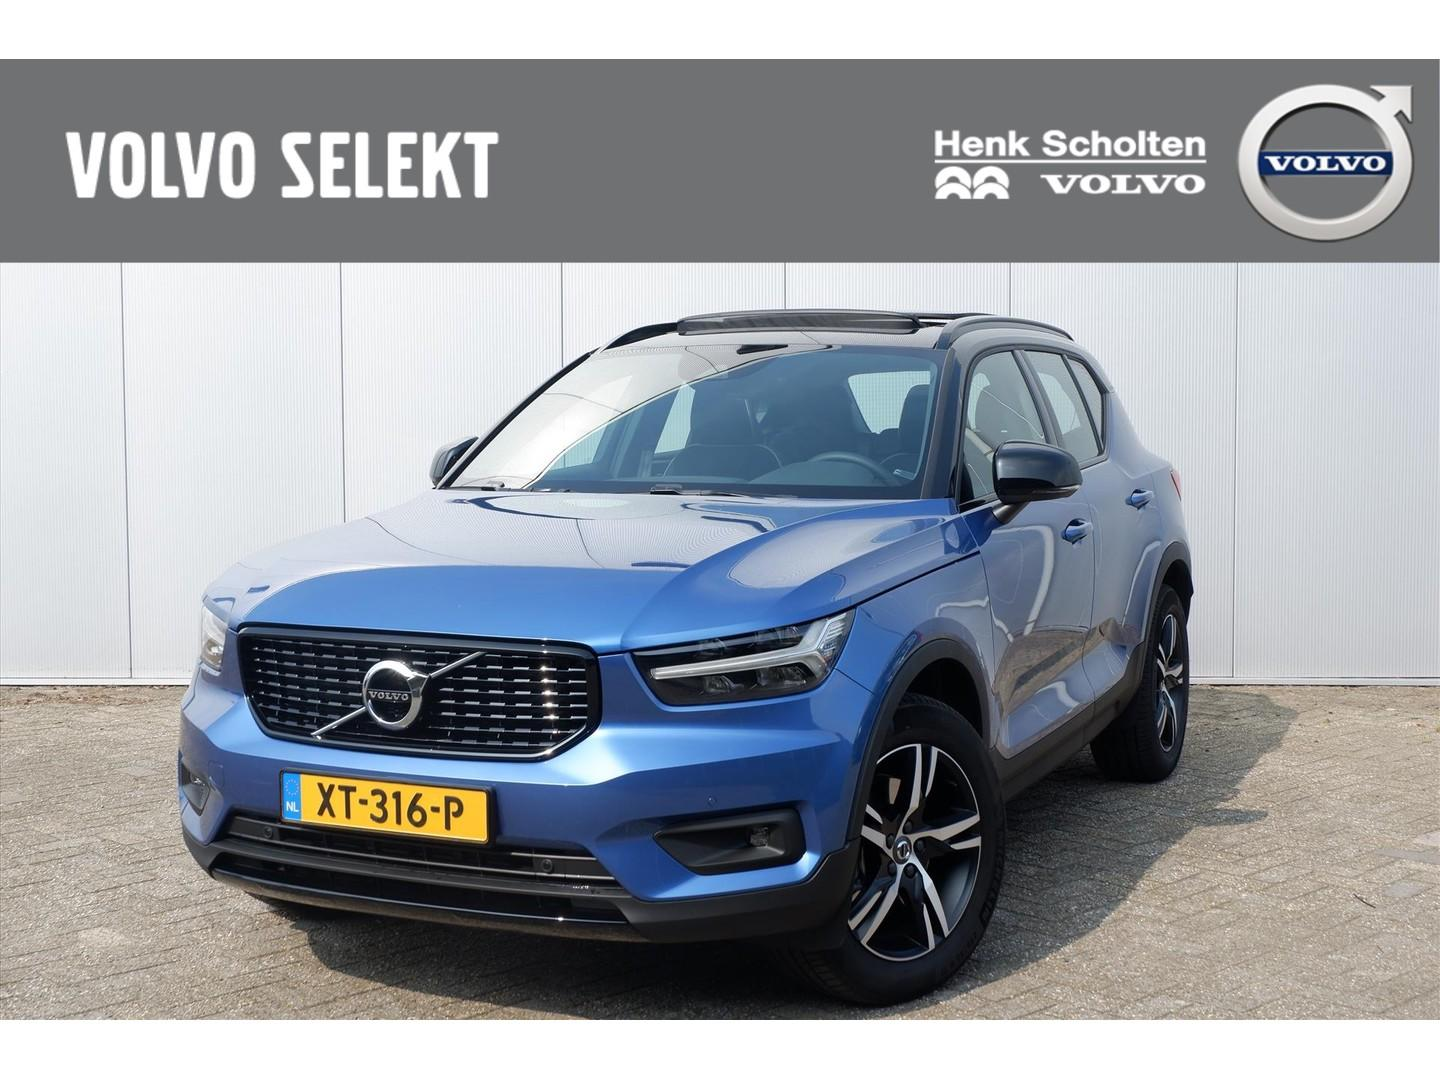 Volvo Xc40 T4 190pk aut8 r-design/luxury/intellisafe